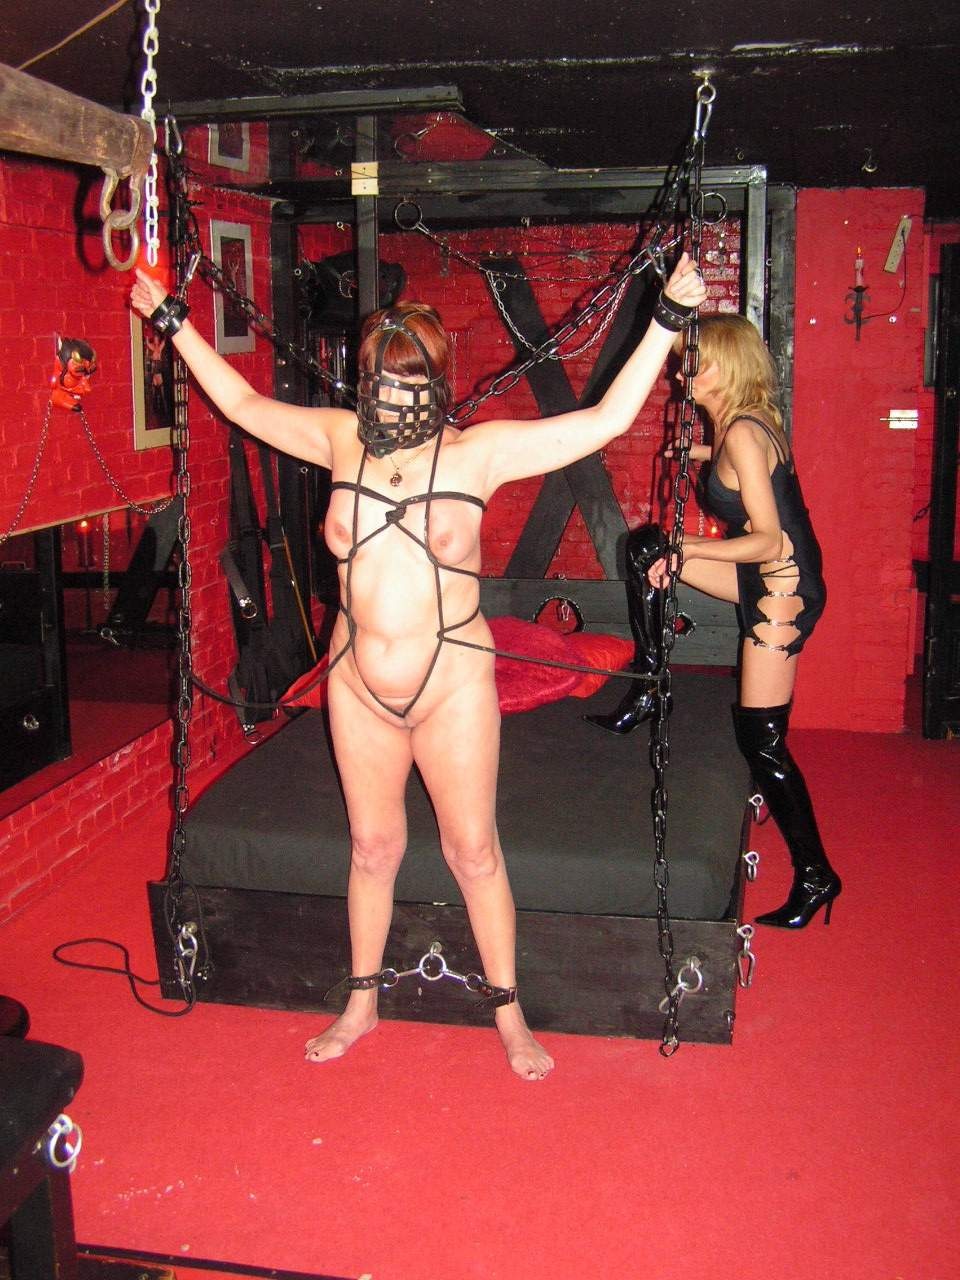 Bdsm Dungeon building a private bdsm dungeon – extreme rope